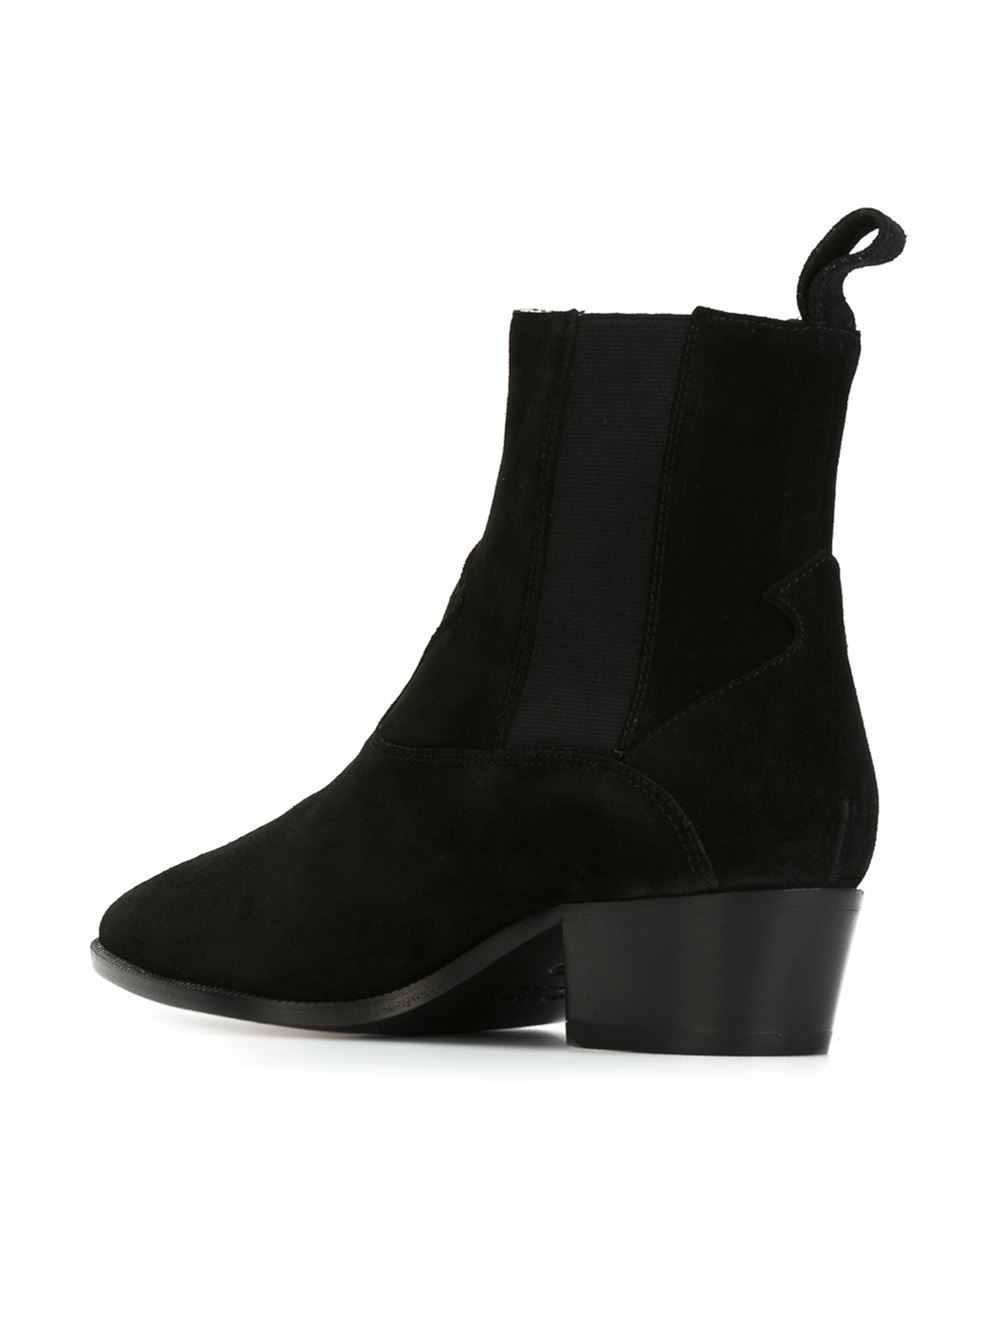 L'Autre Chose Suede Pointed Toe Chelsea Boots in Black